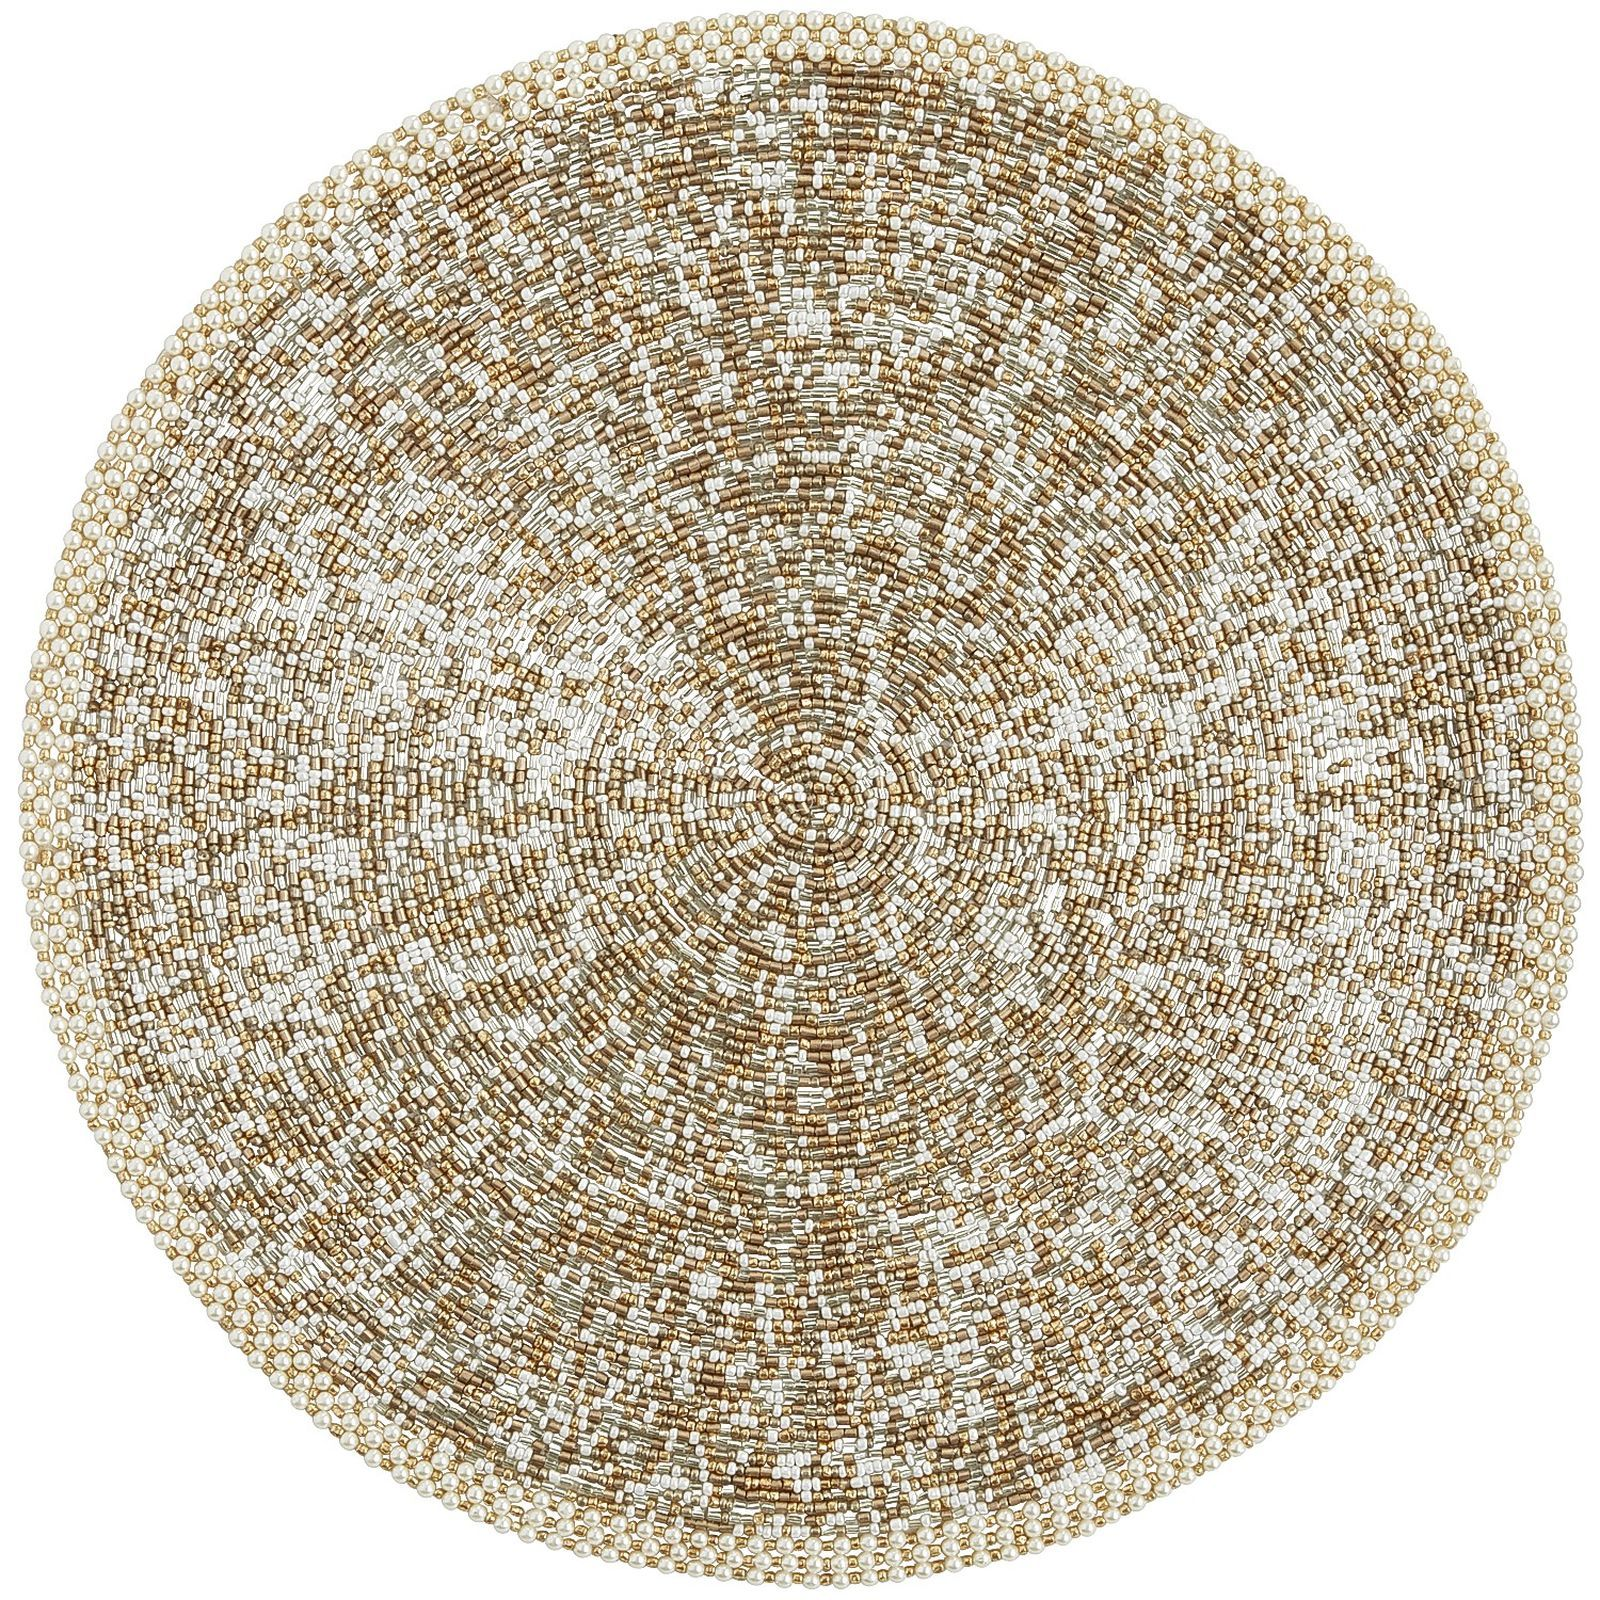 Beaded Gold Ivory Placemat Placemats Placemats For Round Table Linen Placemats